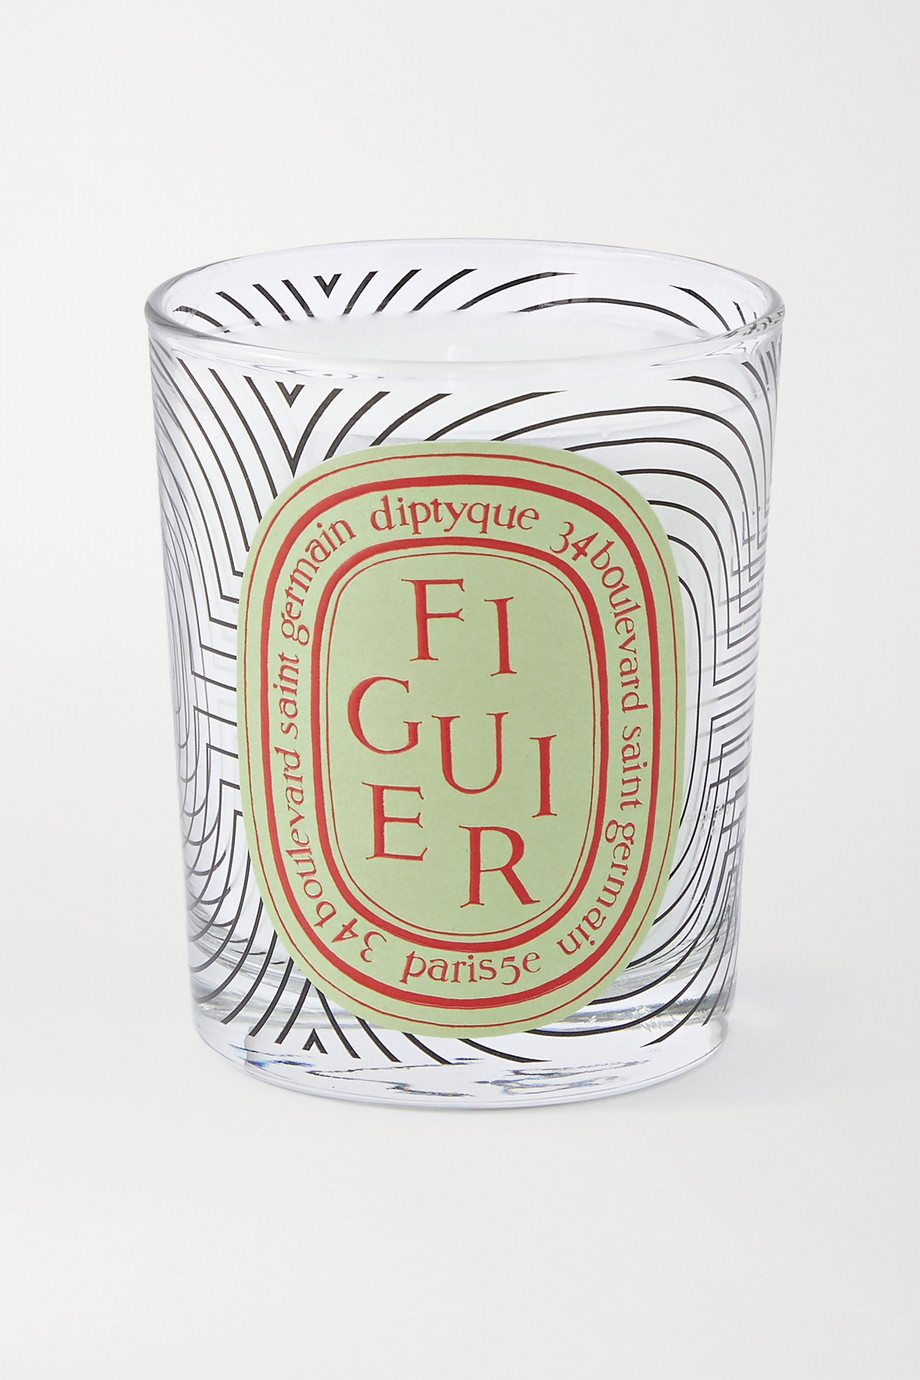 DIPTYQUE Graphic Collection scented candle - Figuier, 190g